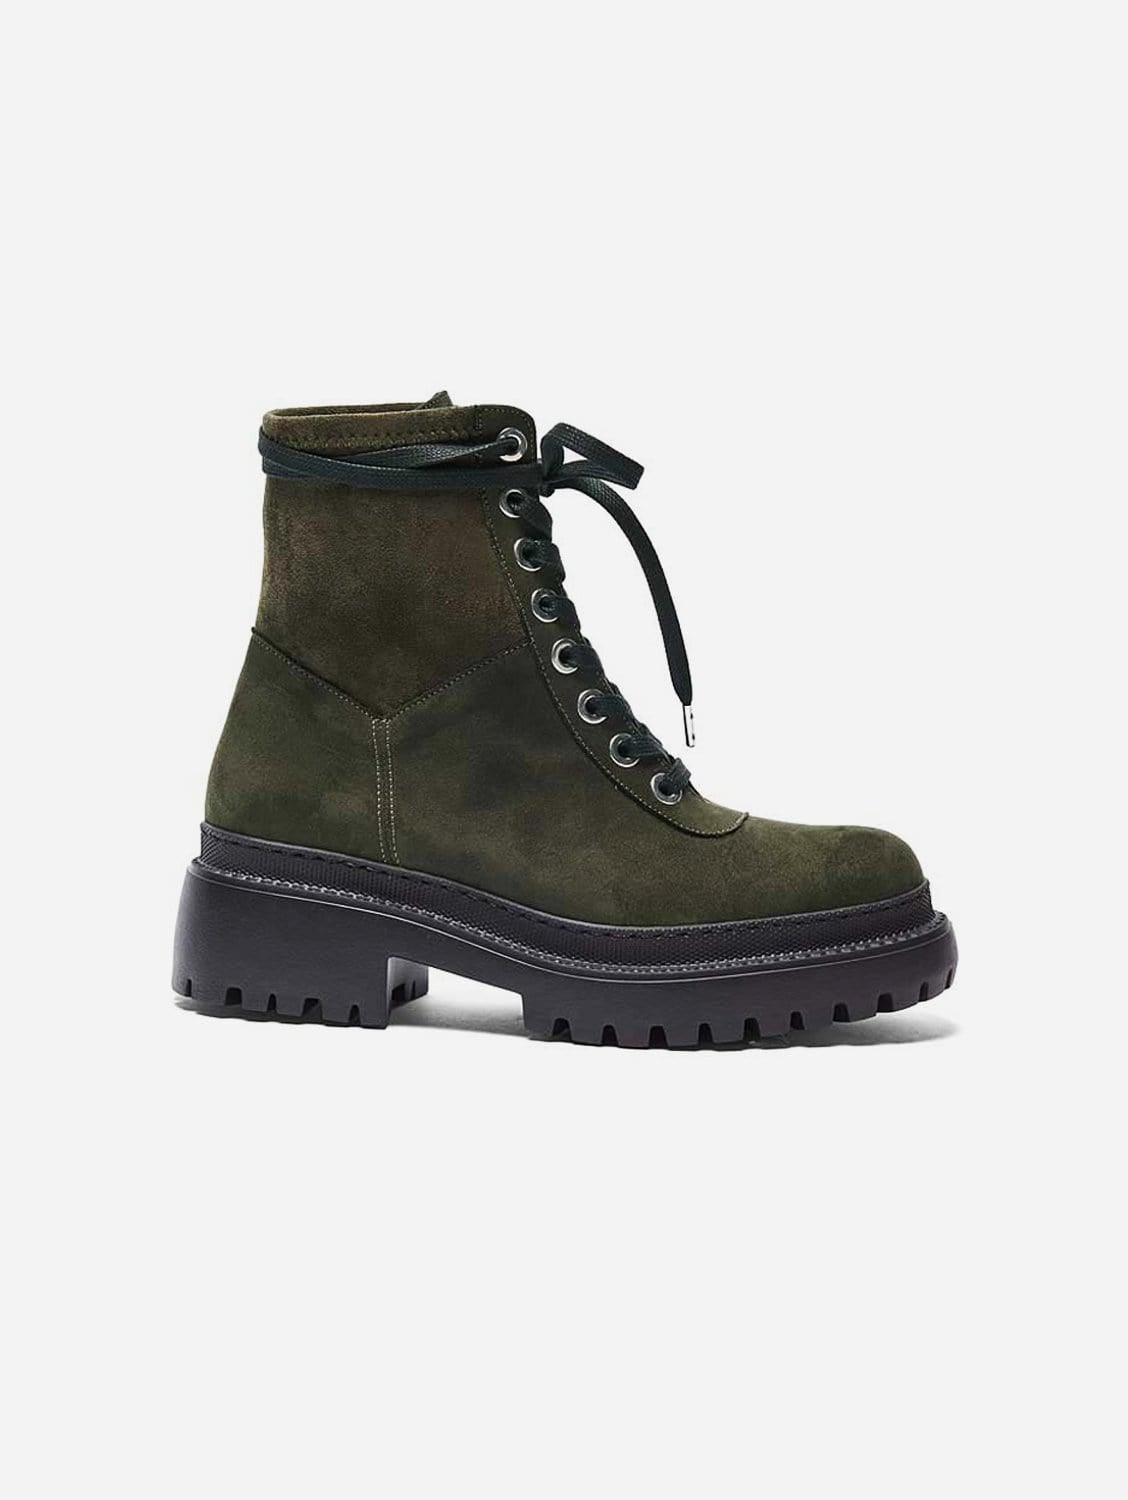 Isolda Recycled Polyester Vegan Suede Lace-up Boots   Khaki